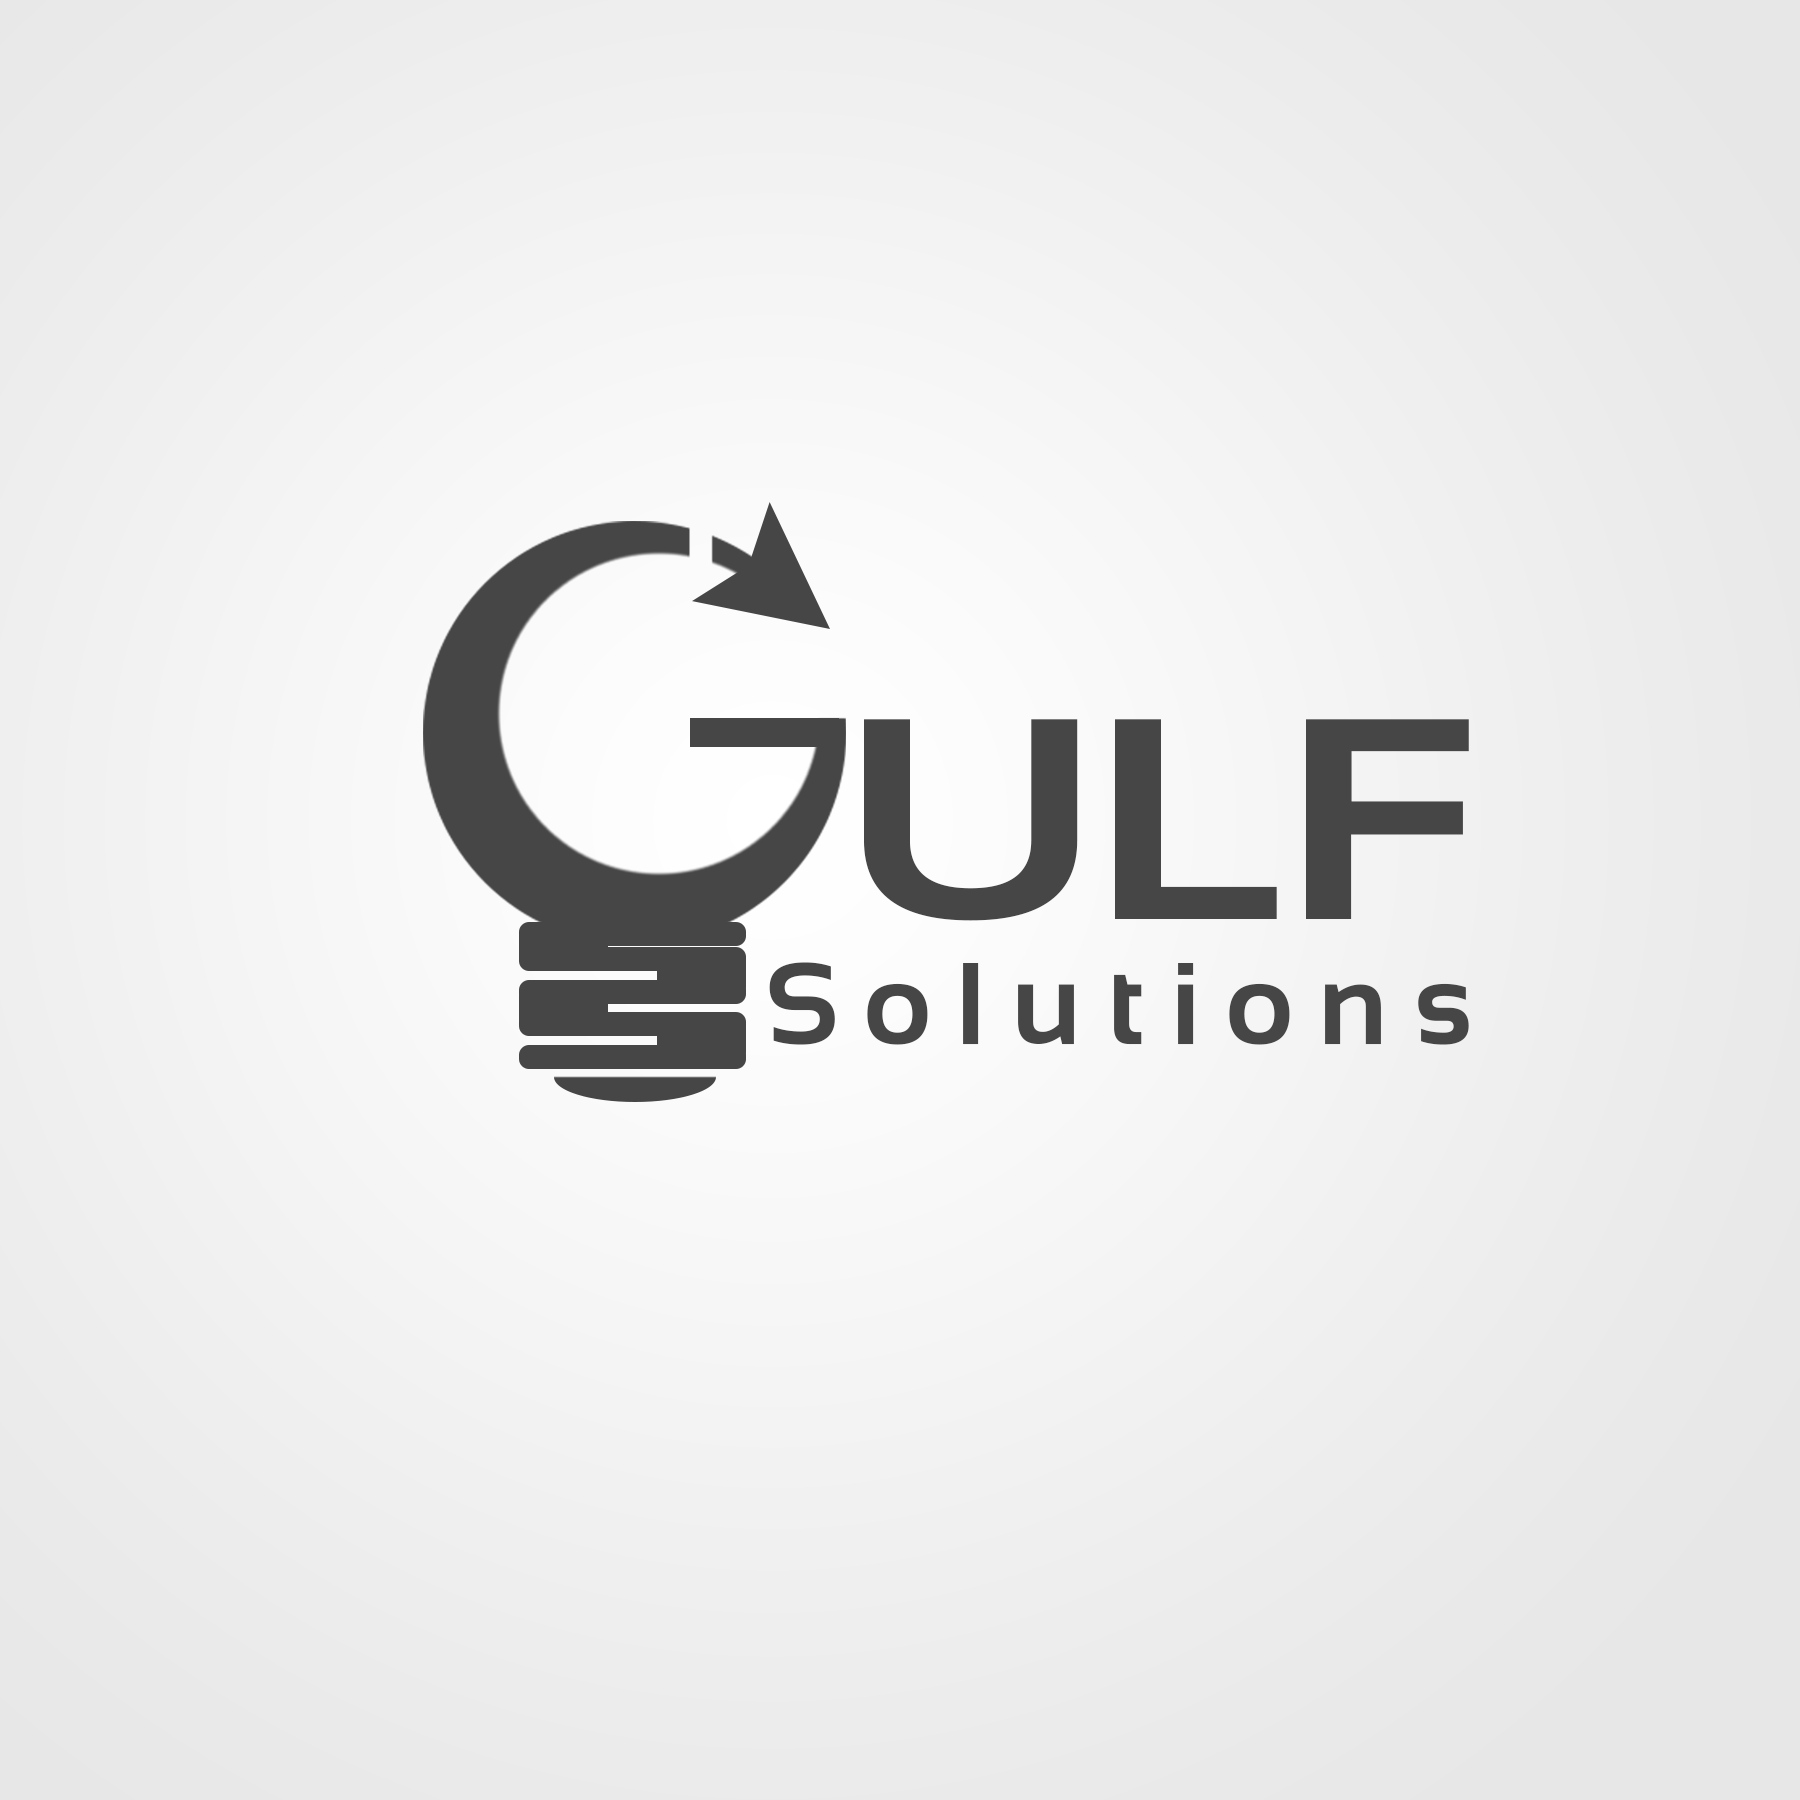 Logo Design by Lemuel Arvin Tanzo - Entry No. 107 in the Logo Design Contest New Logo Design for Gulf solutions company.